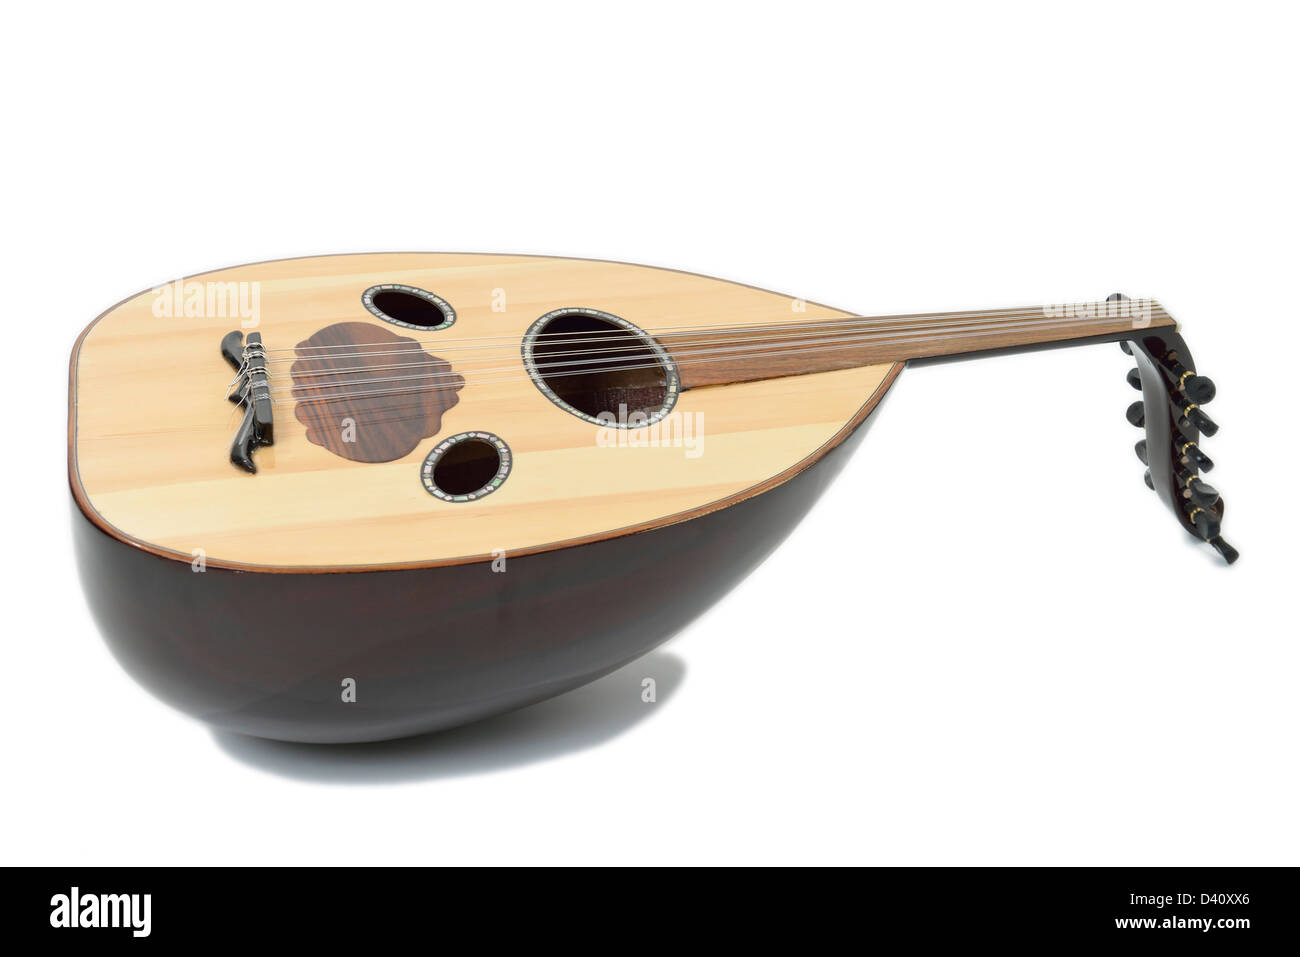 An Oud - an Arabic / Turkish / Hebrew / Eastern Lute musical instrument - Stock Image